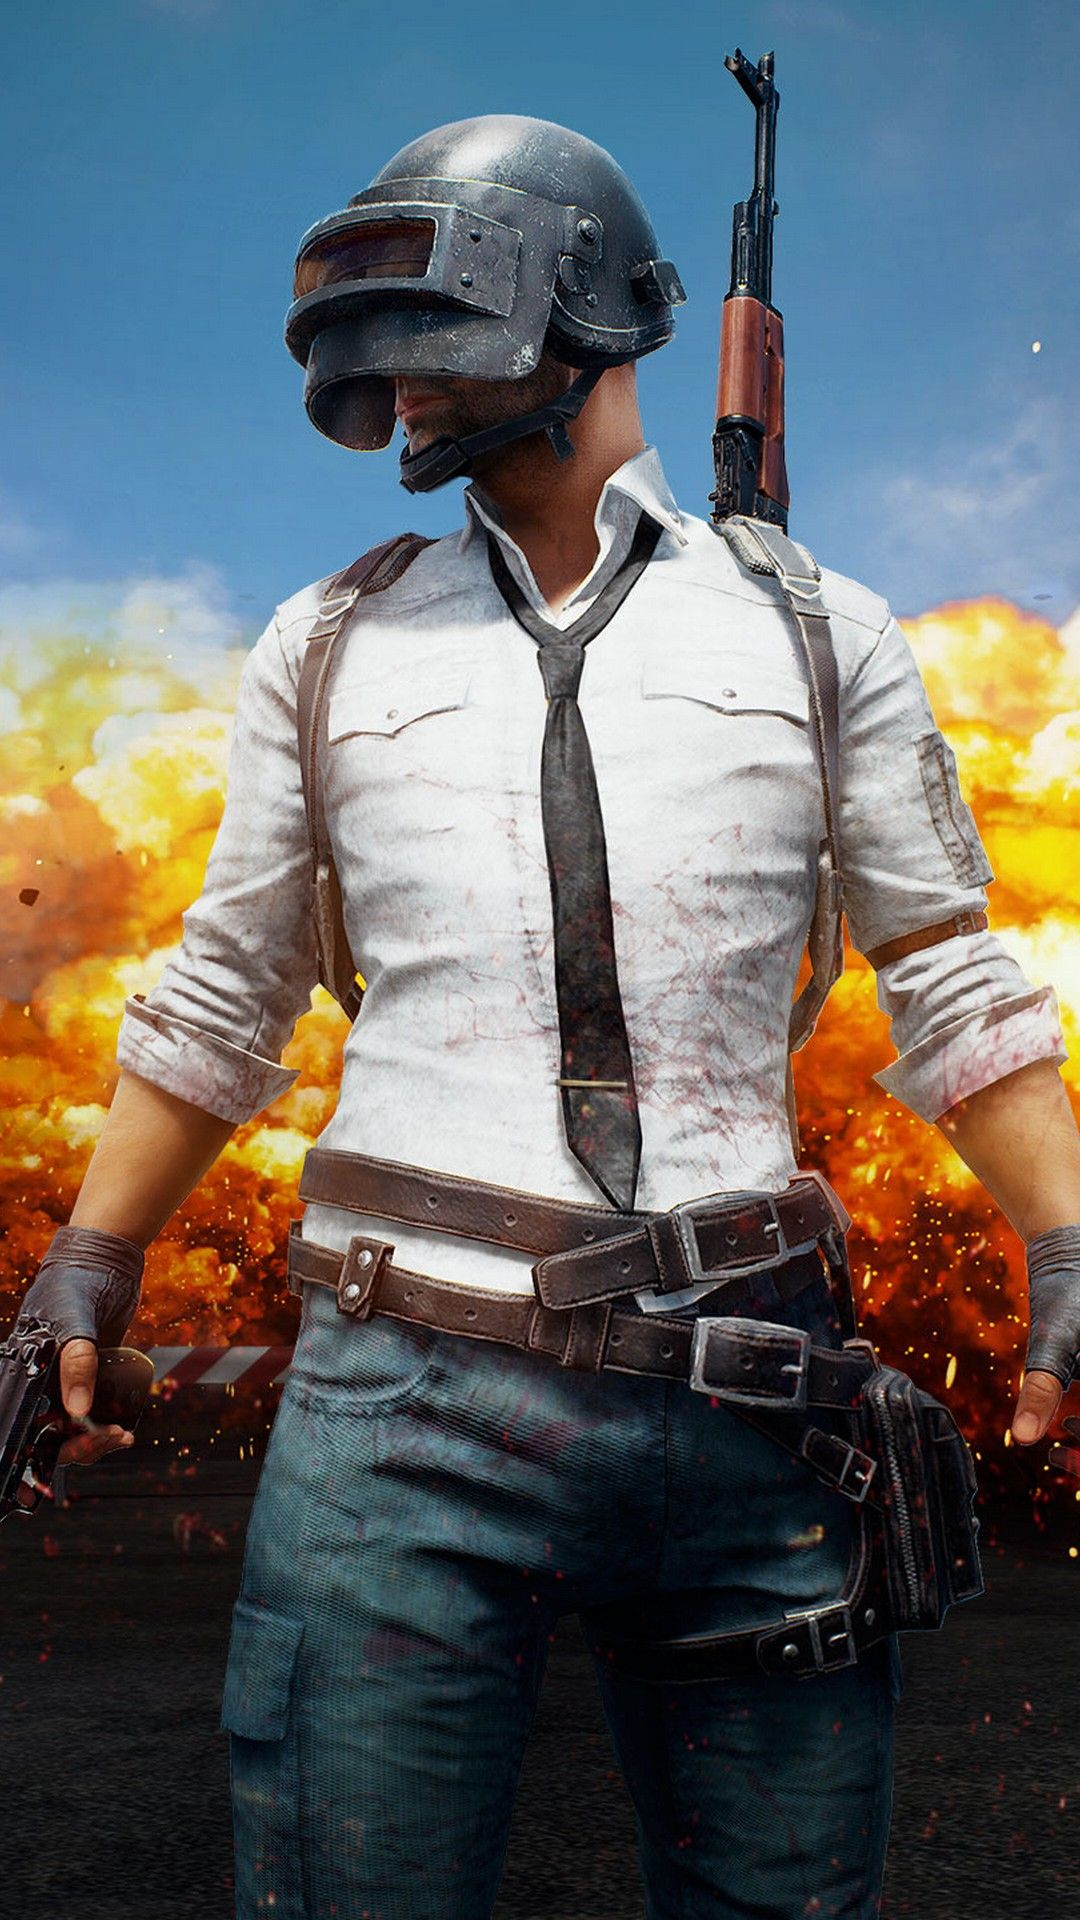 iPhone Wallpapers HD from wallpaperscute.com,  iPhone Wallpaper HD PUBG Mobile with image resolution 1080x1920 pixel. You can use this wallpaper as background for your desktop Computer Screensavers, Android or iPhone smartphones